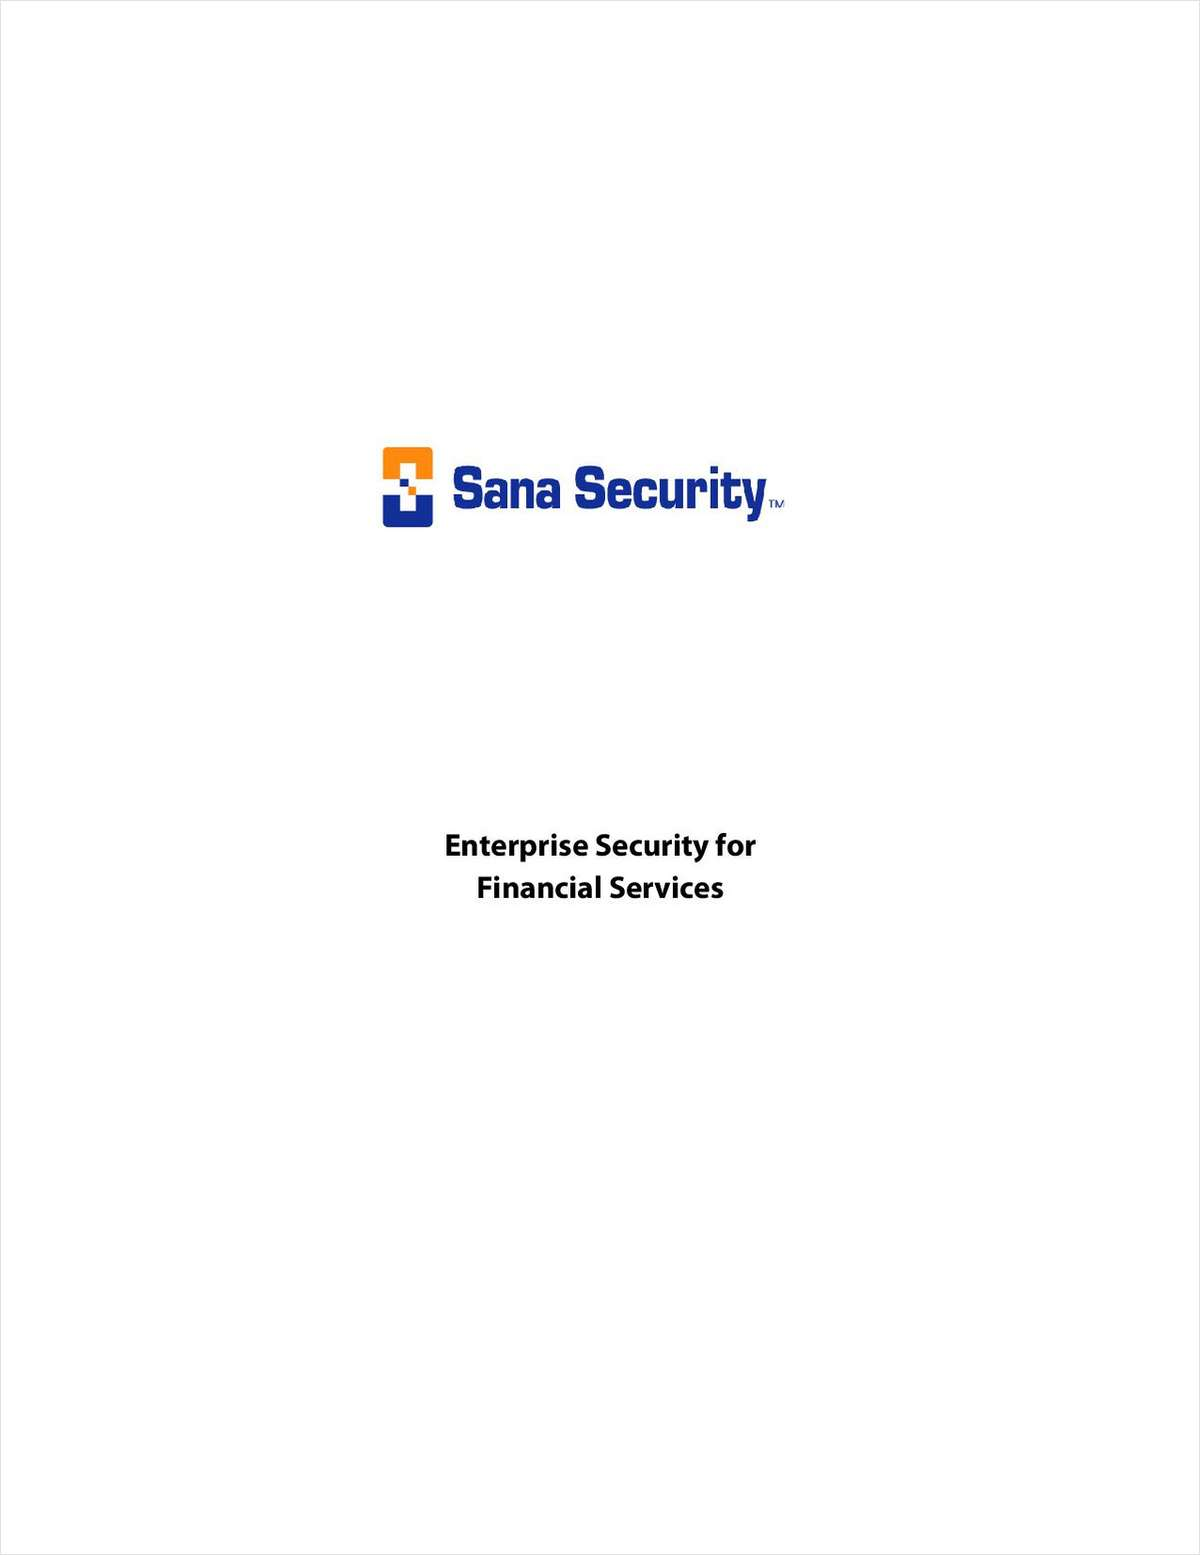 Enterprise Security for Financial Services